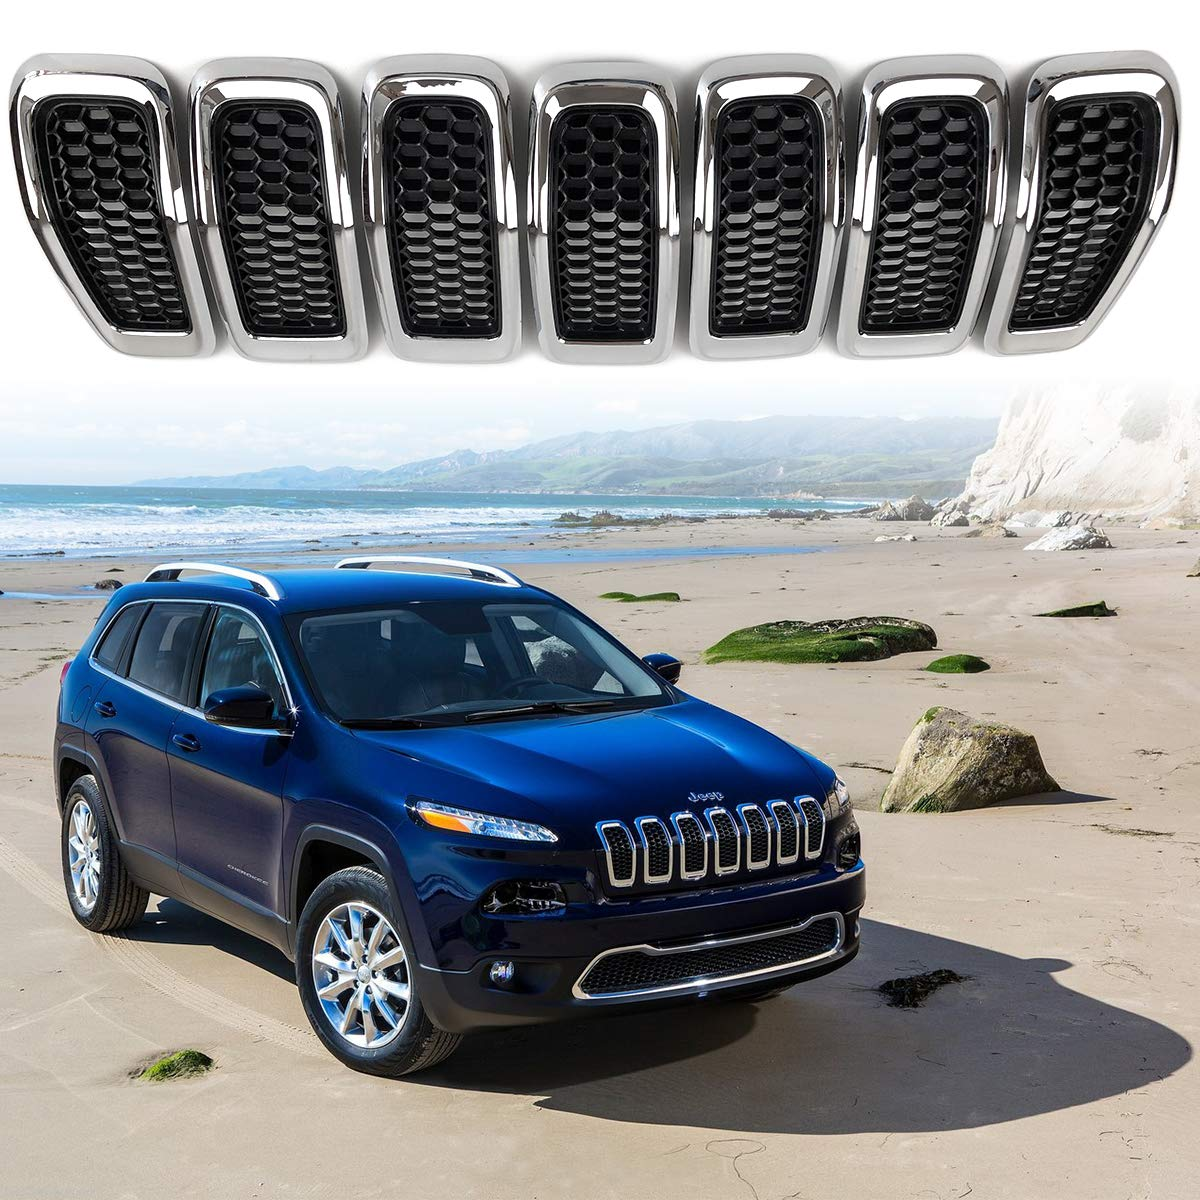 Chrome MEEPAR 7pcs Gloss Black Mesh Honeycomb with Dark Gray Ring Front Grille Grill Inserts Covers for 2014-2018 Jeep Cherokee